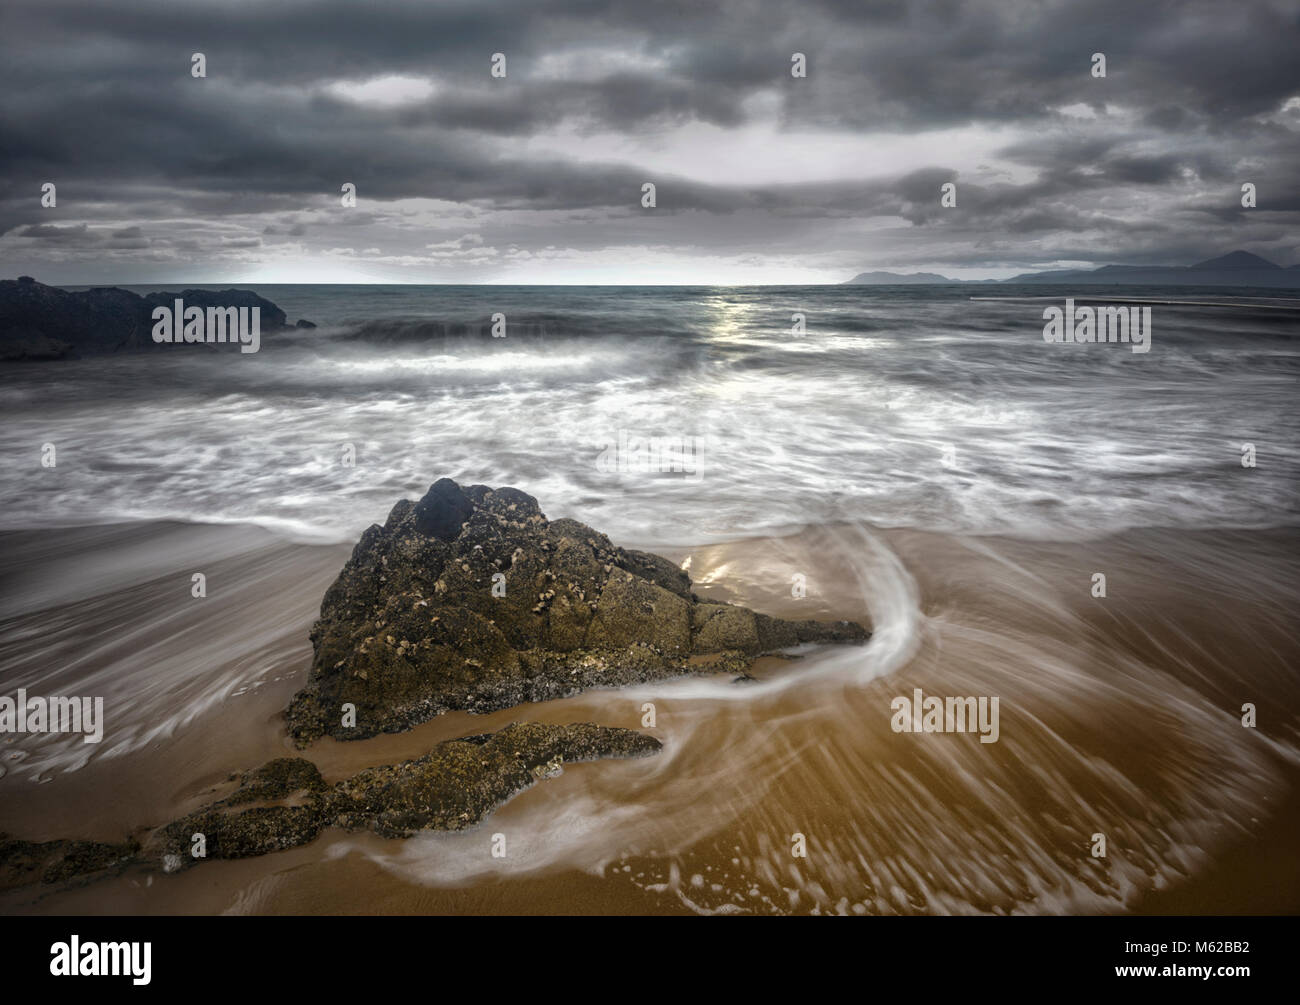 Waves motion blur around a rock at Yorkeys Knob Beach during a storm, Cairns Northern Beaches, Far North Queensland, - Stock Image